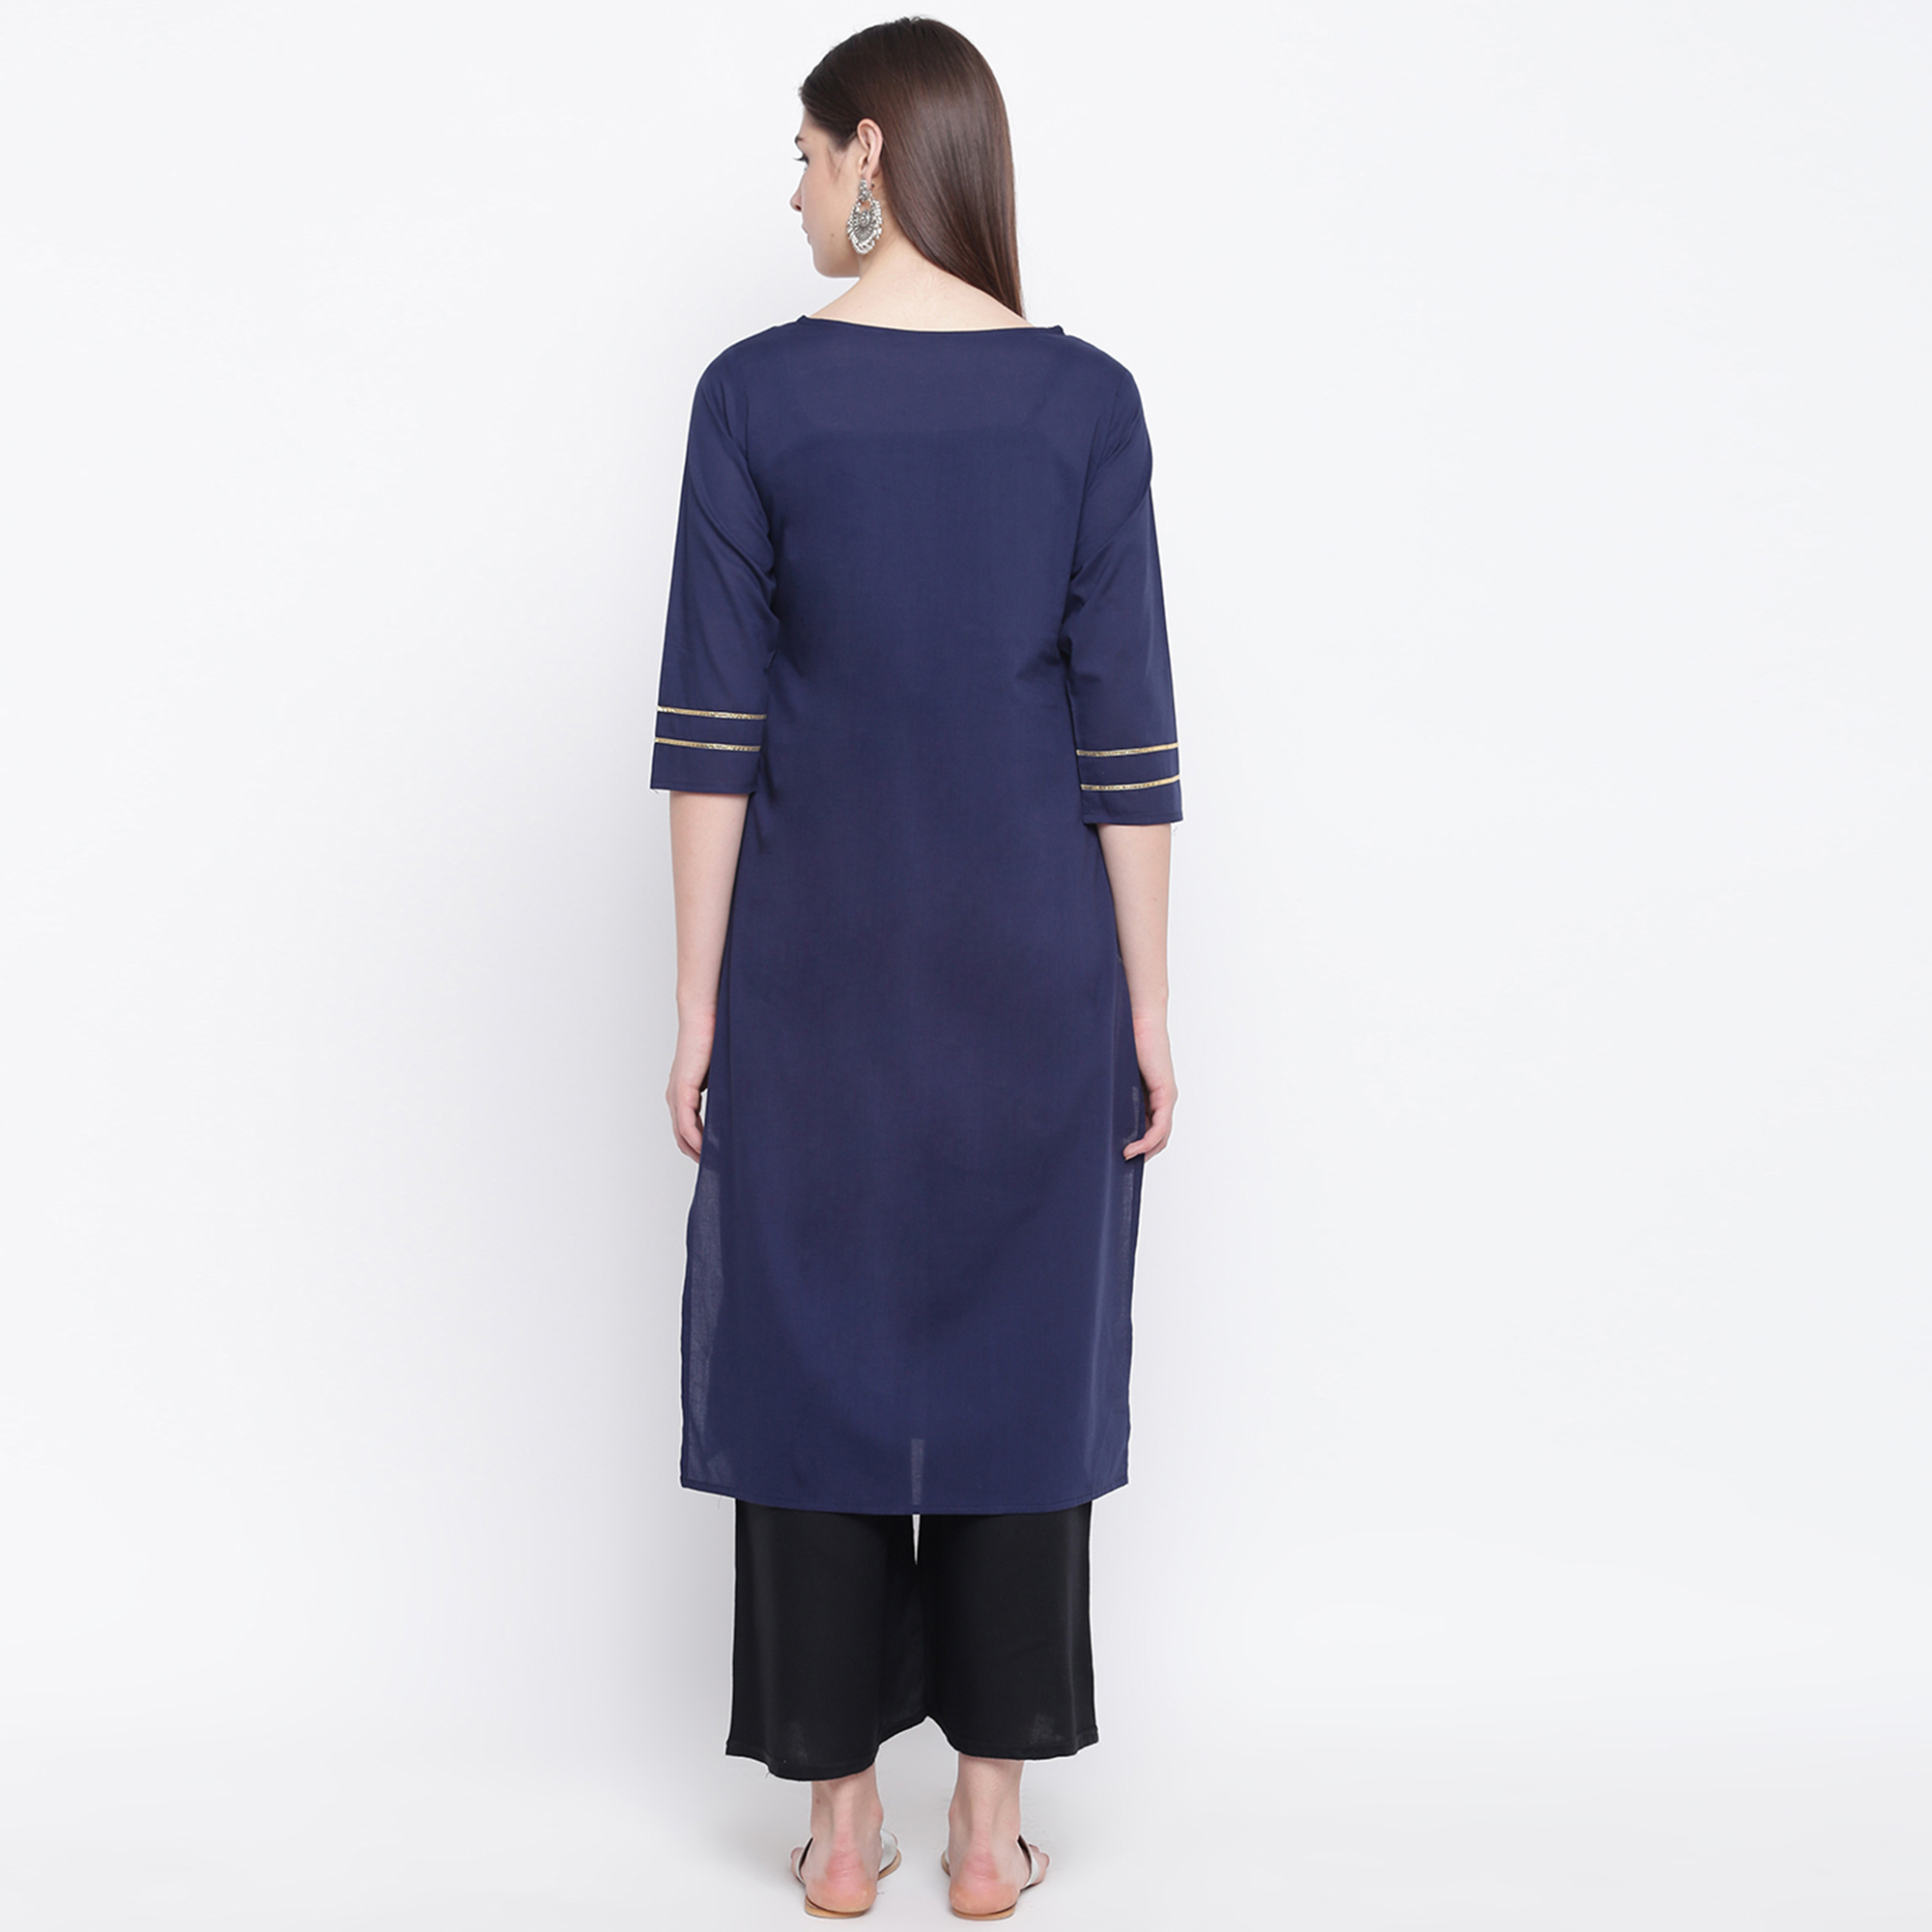 Charming Navy Blue Colored Casual Wear Printed Cotton Kurti